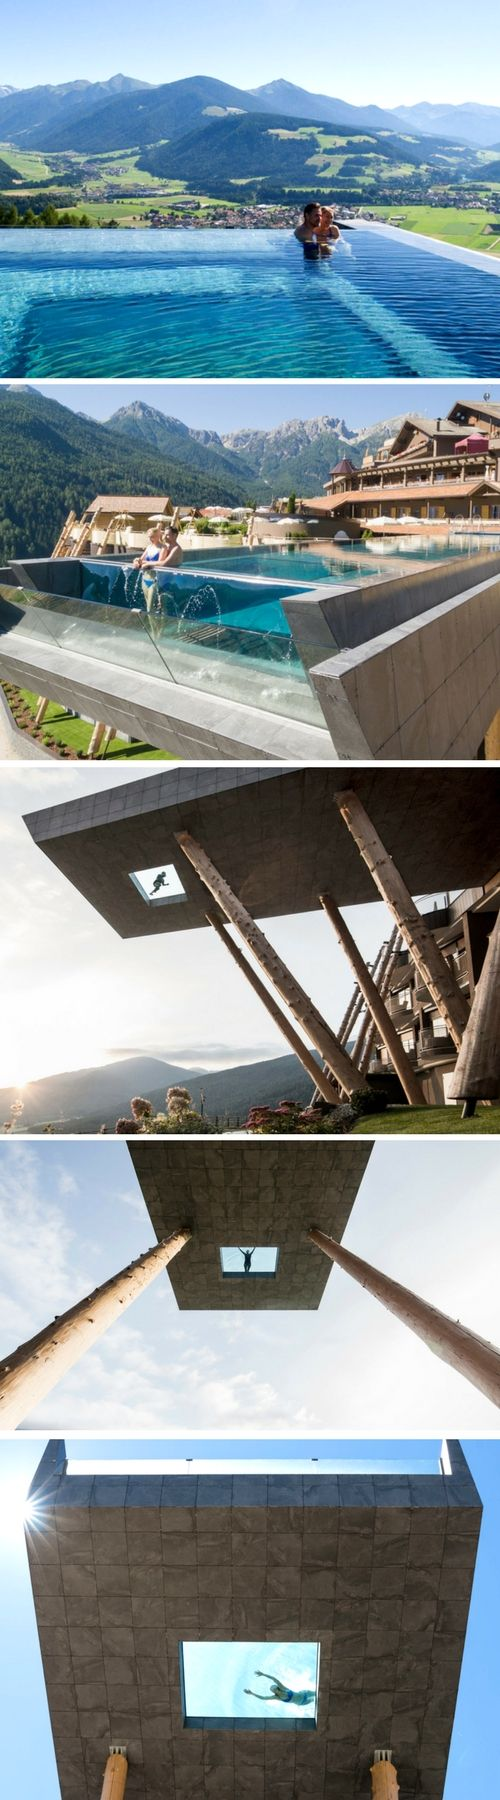 Infinity skypool in South Tyrol | Like a bridge in the sky: this spectacular outdoor pool of Hotel Hubertus in the Alpes has a front  and a part of the bottom made from glass. This gives the bather the feeling of floating above the floor, gliding weightlessly between heaven and earth | The 20 meter high and 25 meter long Skypool is heated all year round and offers breathtaking views #pool #infinity #sky #mountain